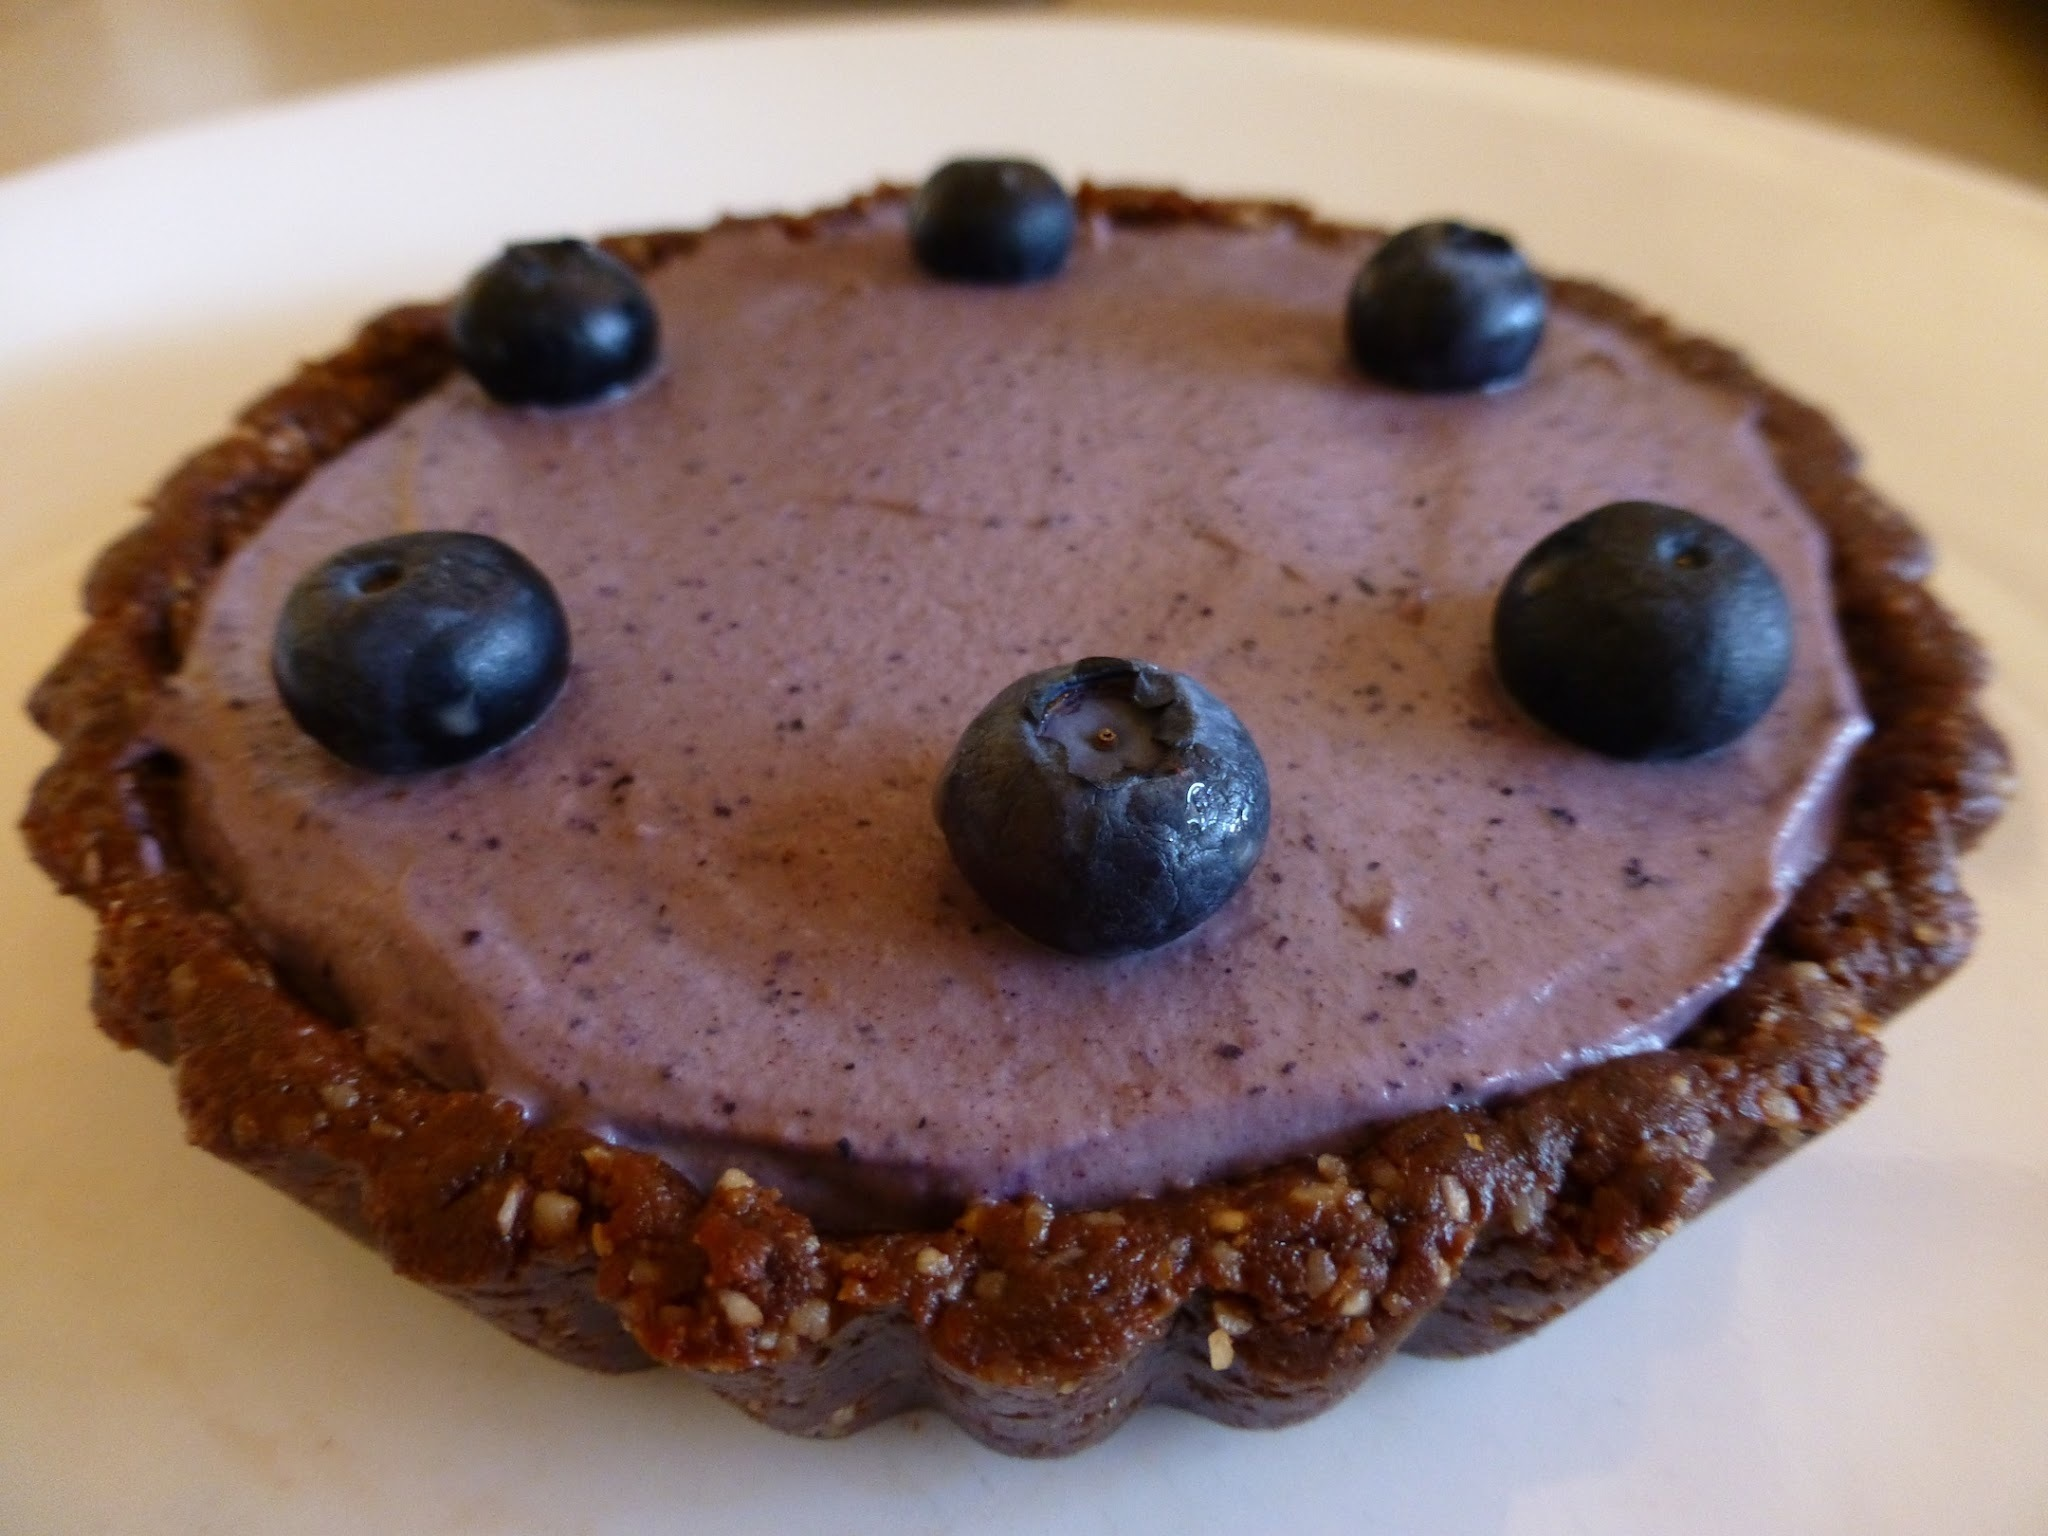 Raw Vegan, Gluten Free, Blueberry Cream Tart In A Chocolate Coconut Crust - Perfect For Valentines Day!